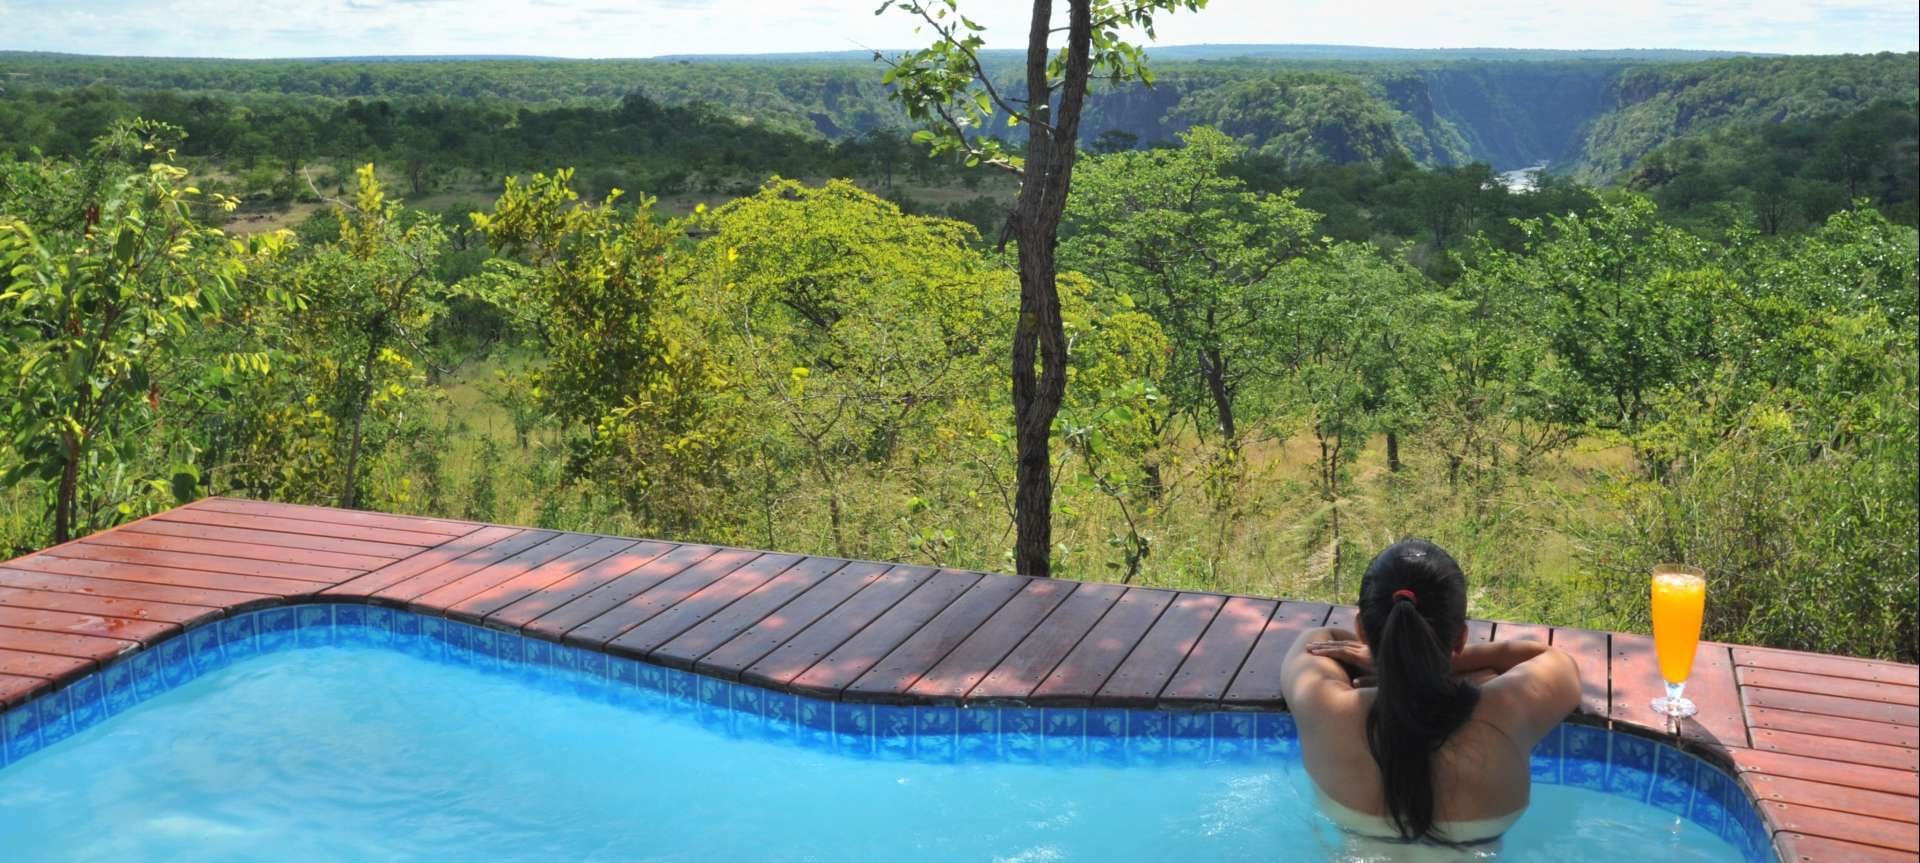 The elephant camp discover africa safaris - Victoria park swimming pool price ...